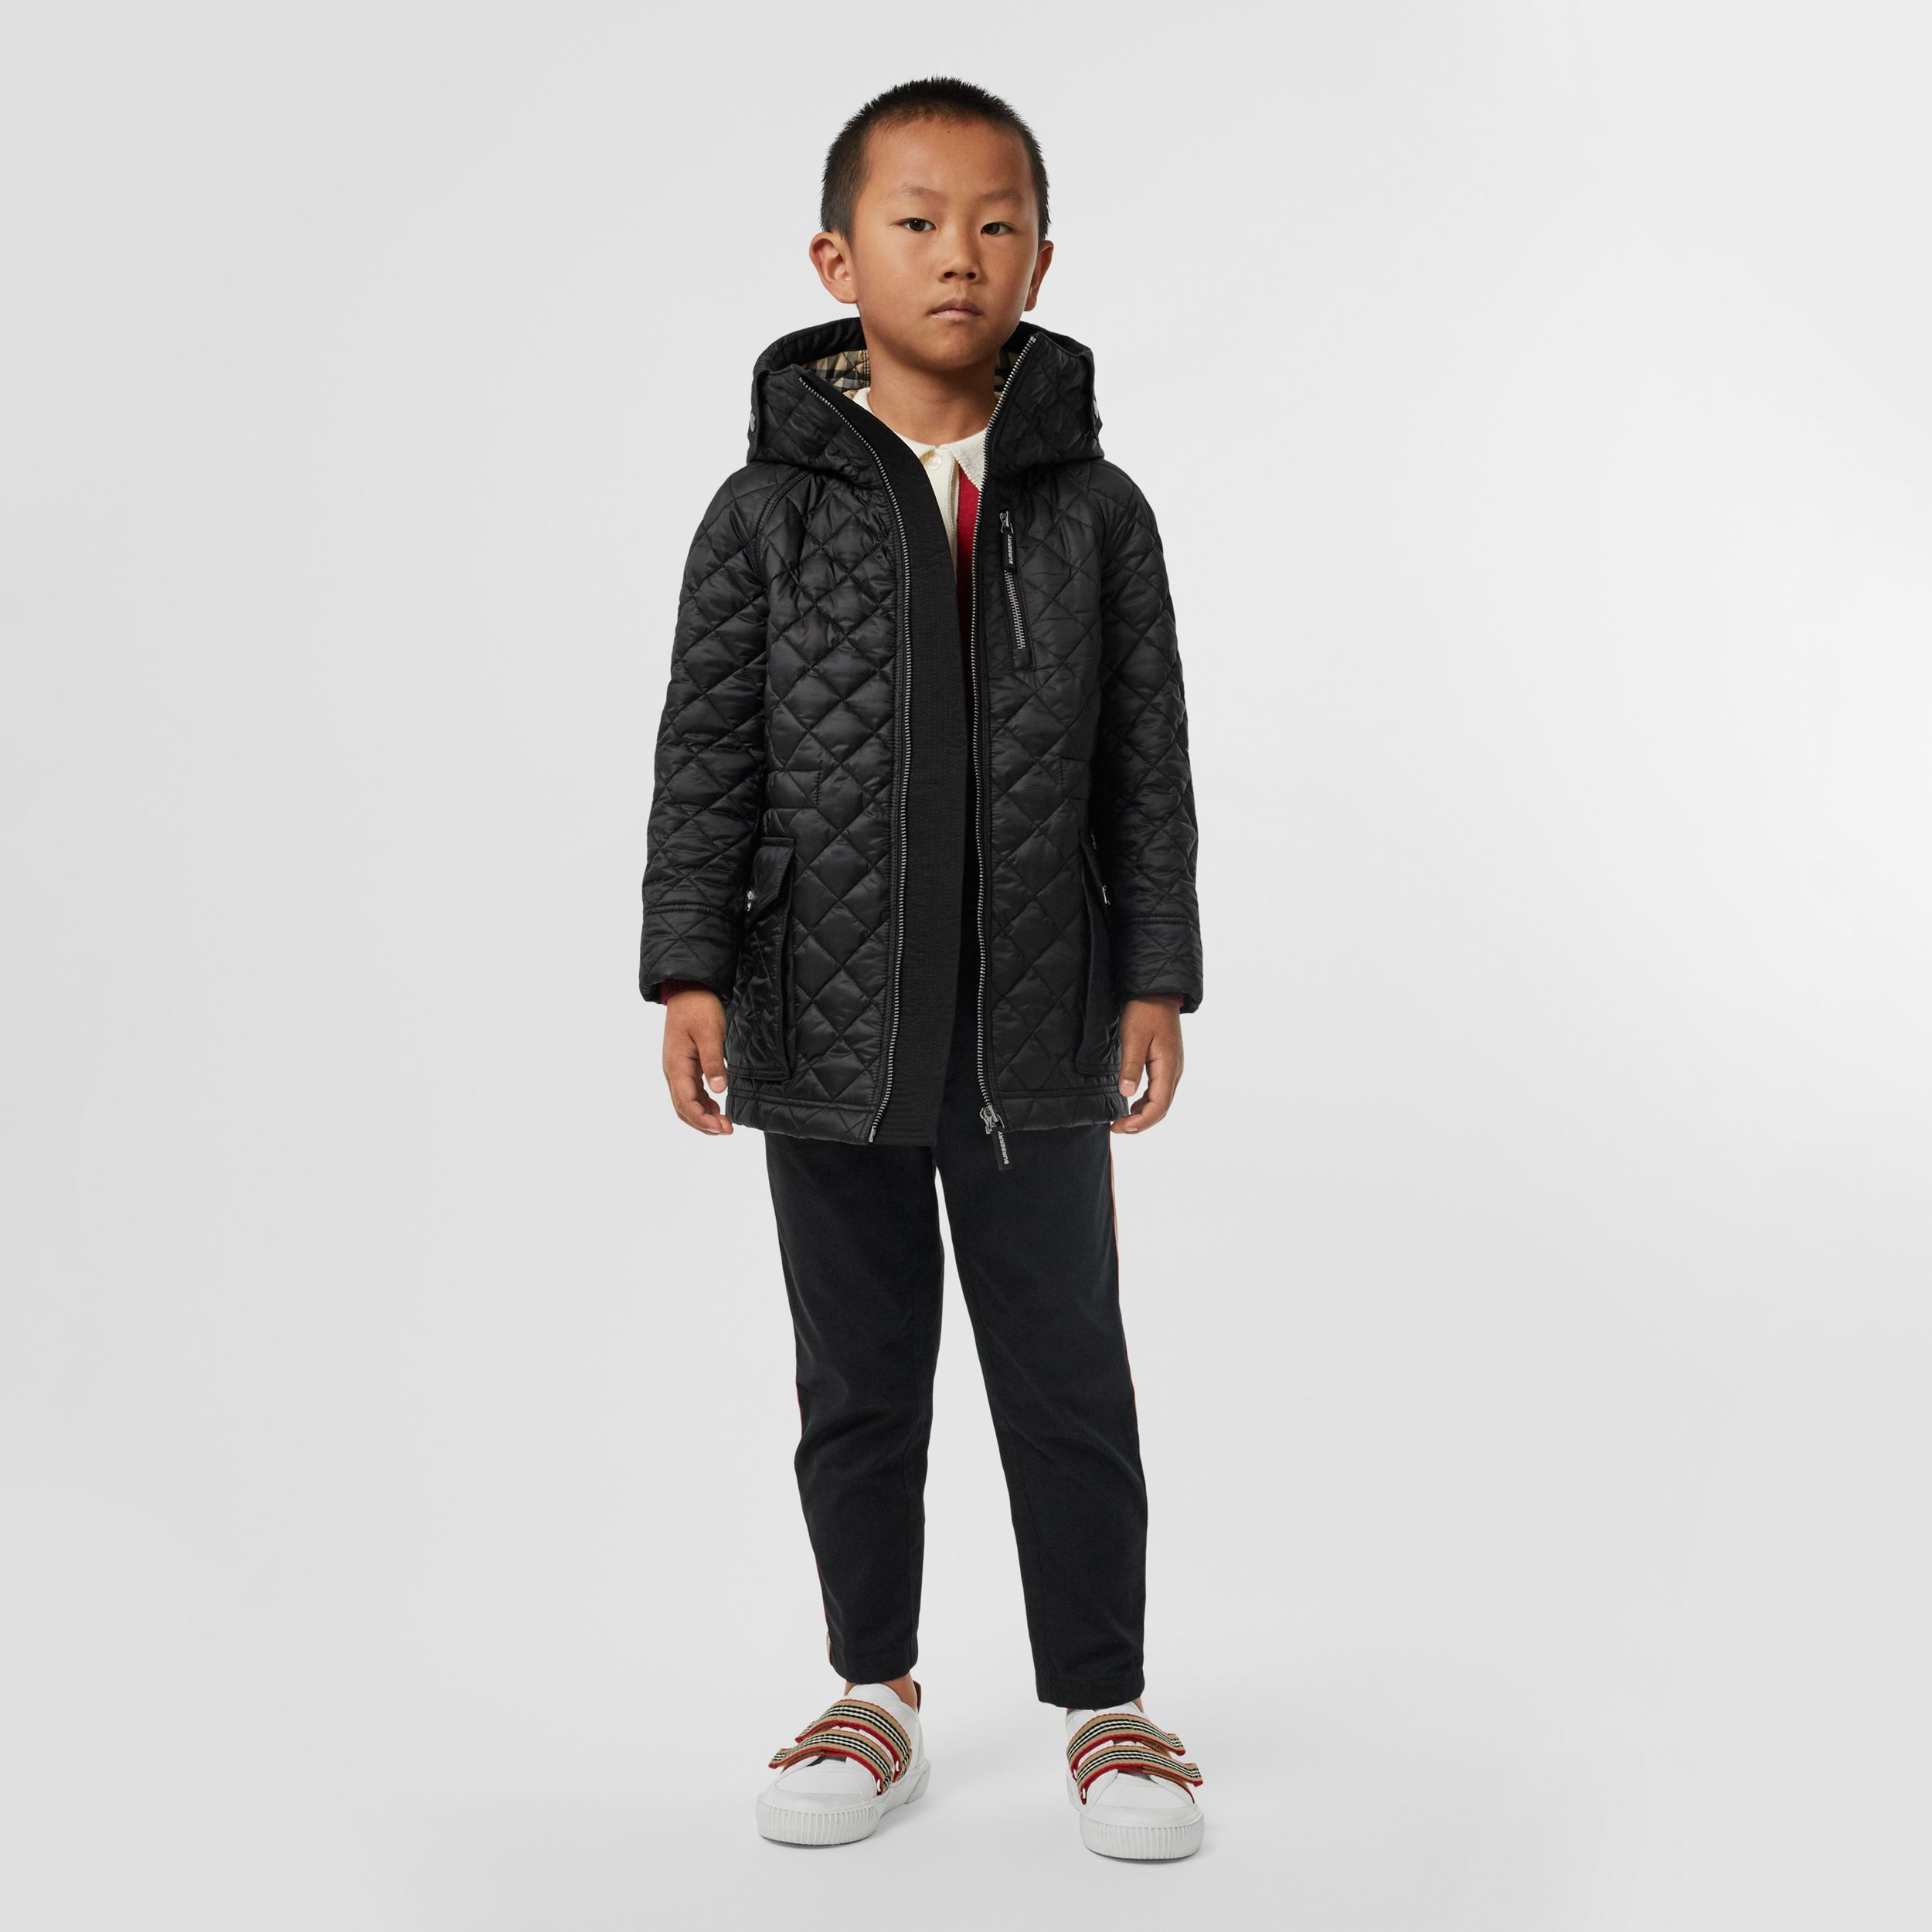 Diamond Quilted Hooded Coat in Black | Burberry - 3